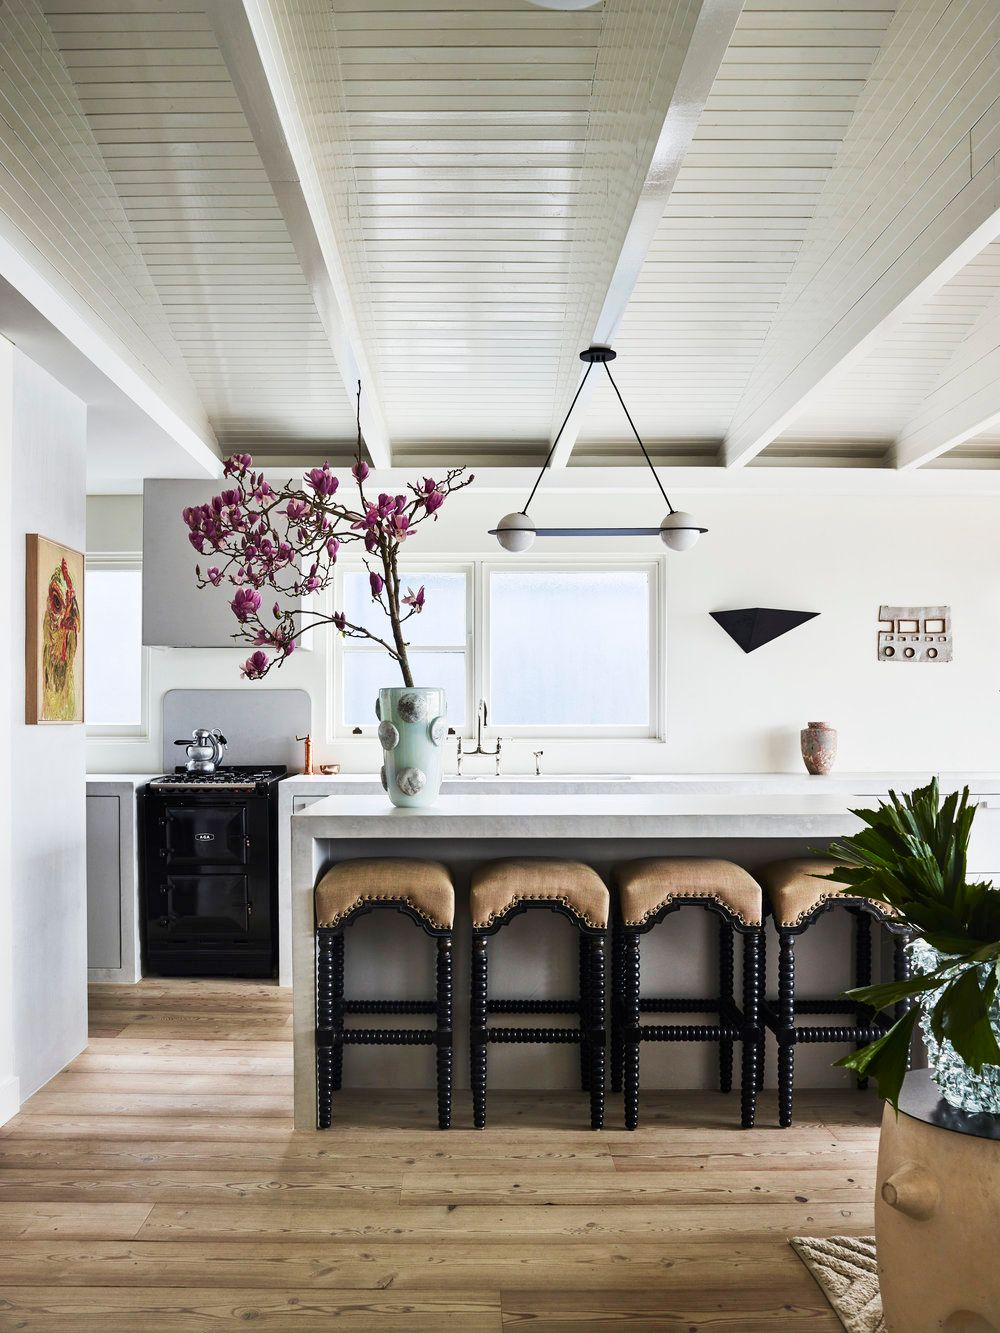 Latest kitchen interior inspiration that you are sure to want to see